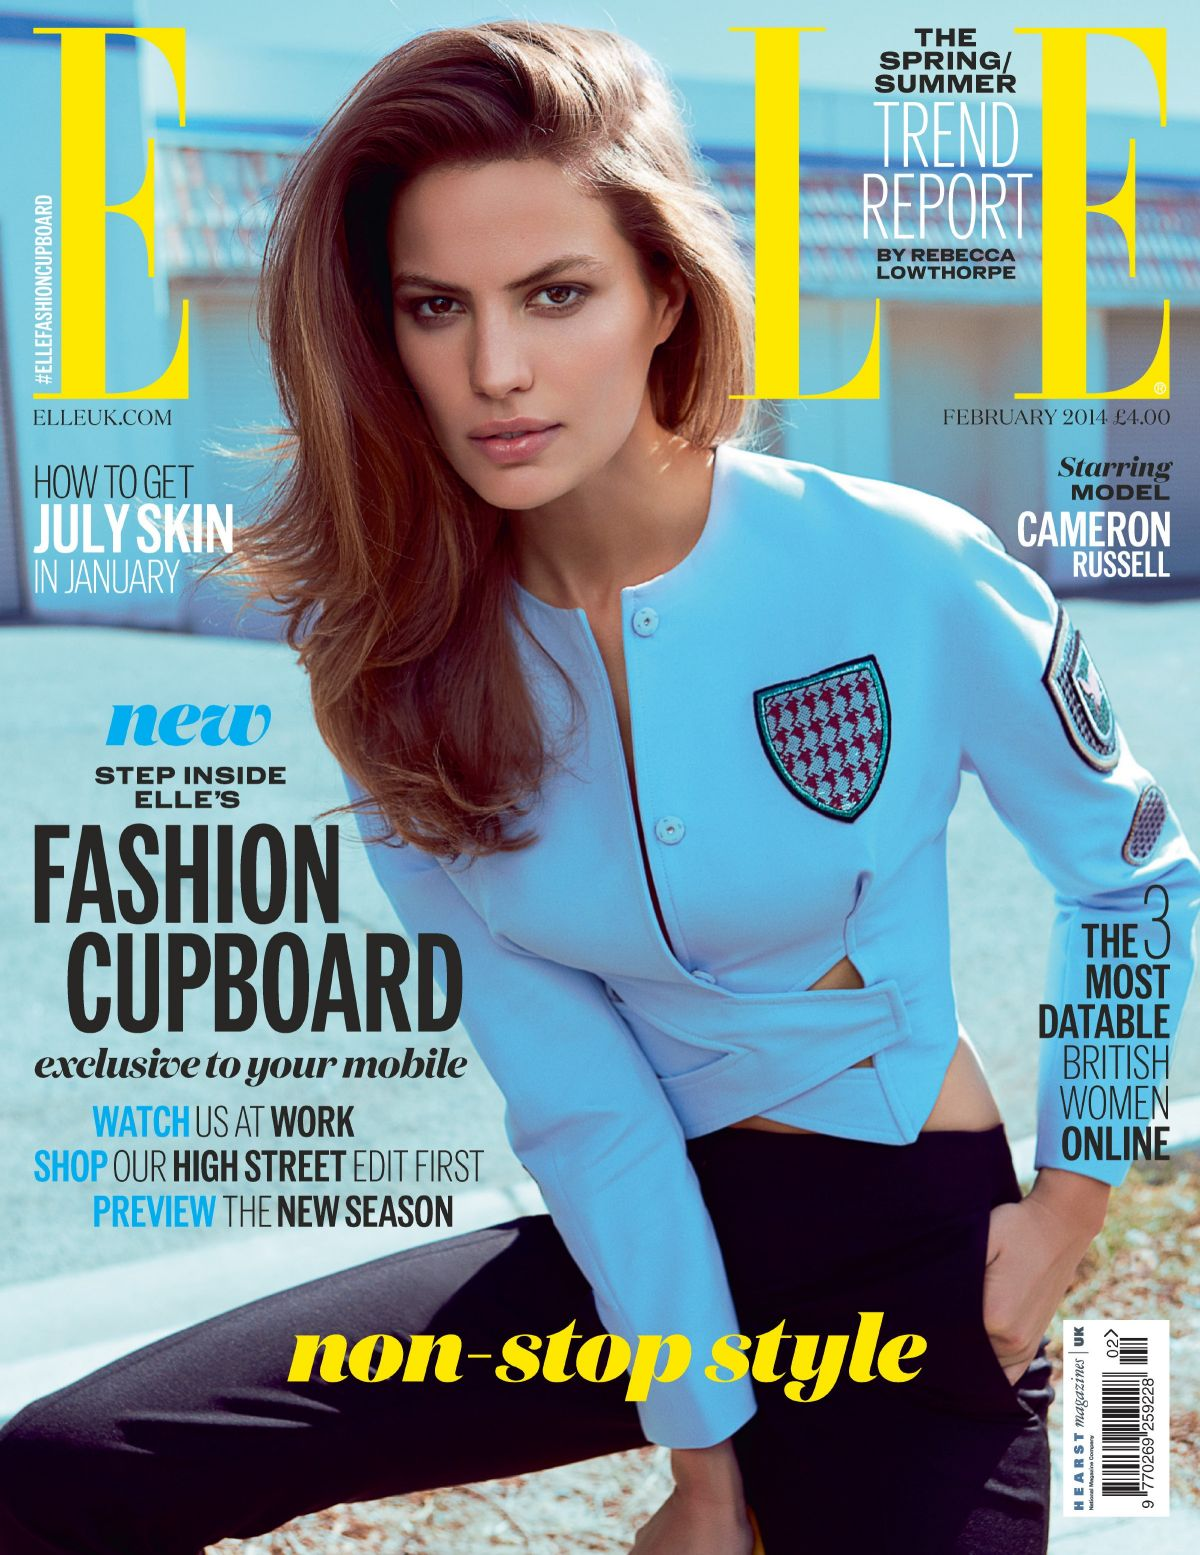 CAMERON RUSSELL on the Cover of Elle Magazine, UK February 2014 Issue